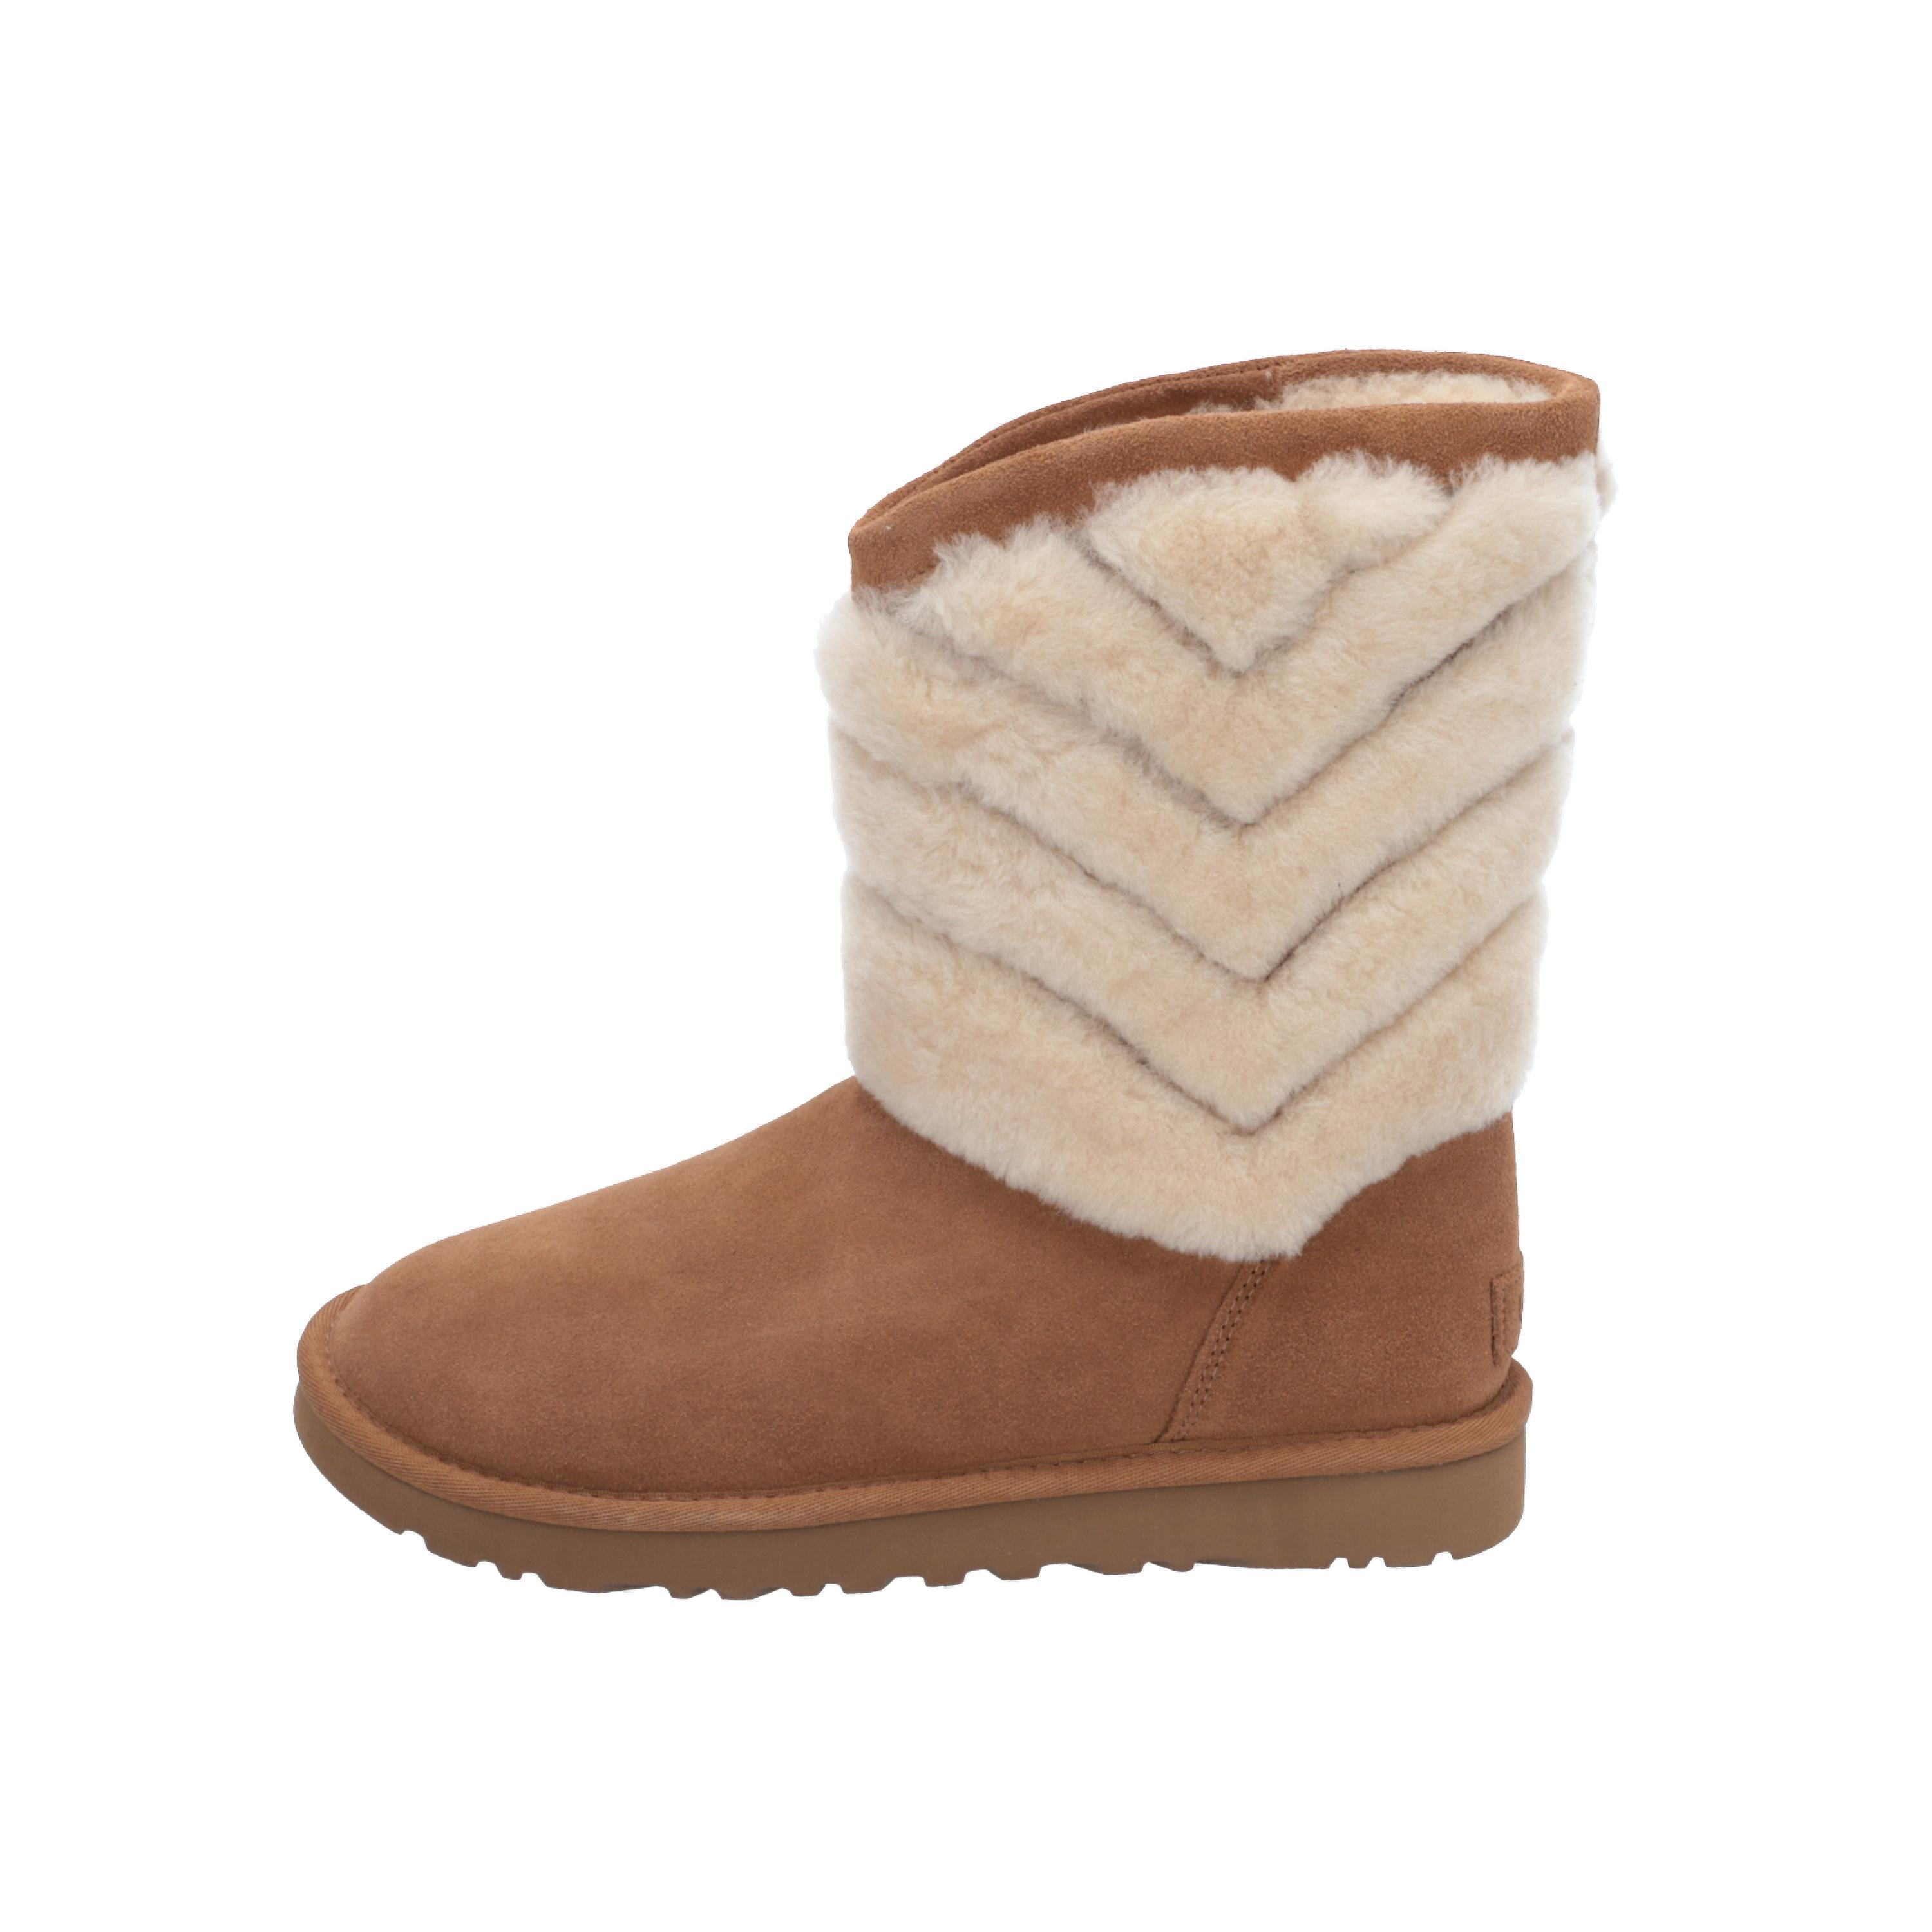 UGG TANIA Bottes pour femmes Brown Lace-Up Bottes Hiver XcQELE